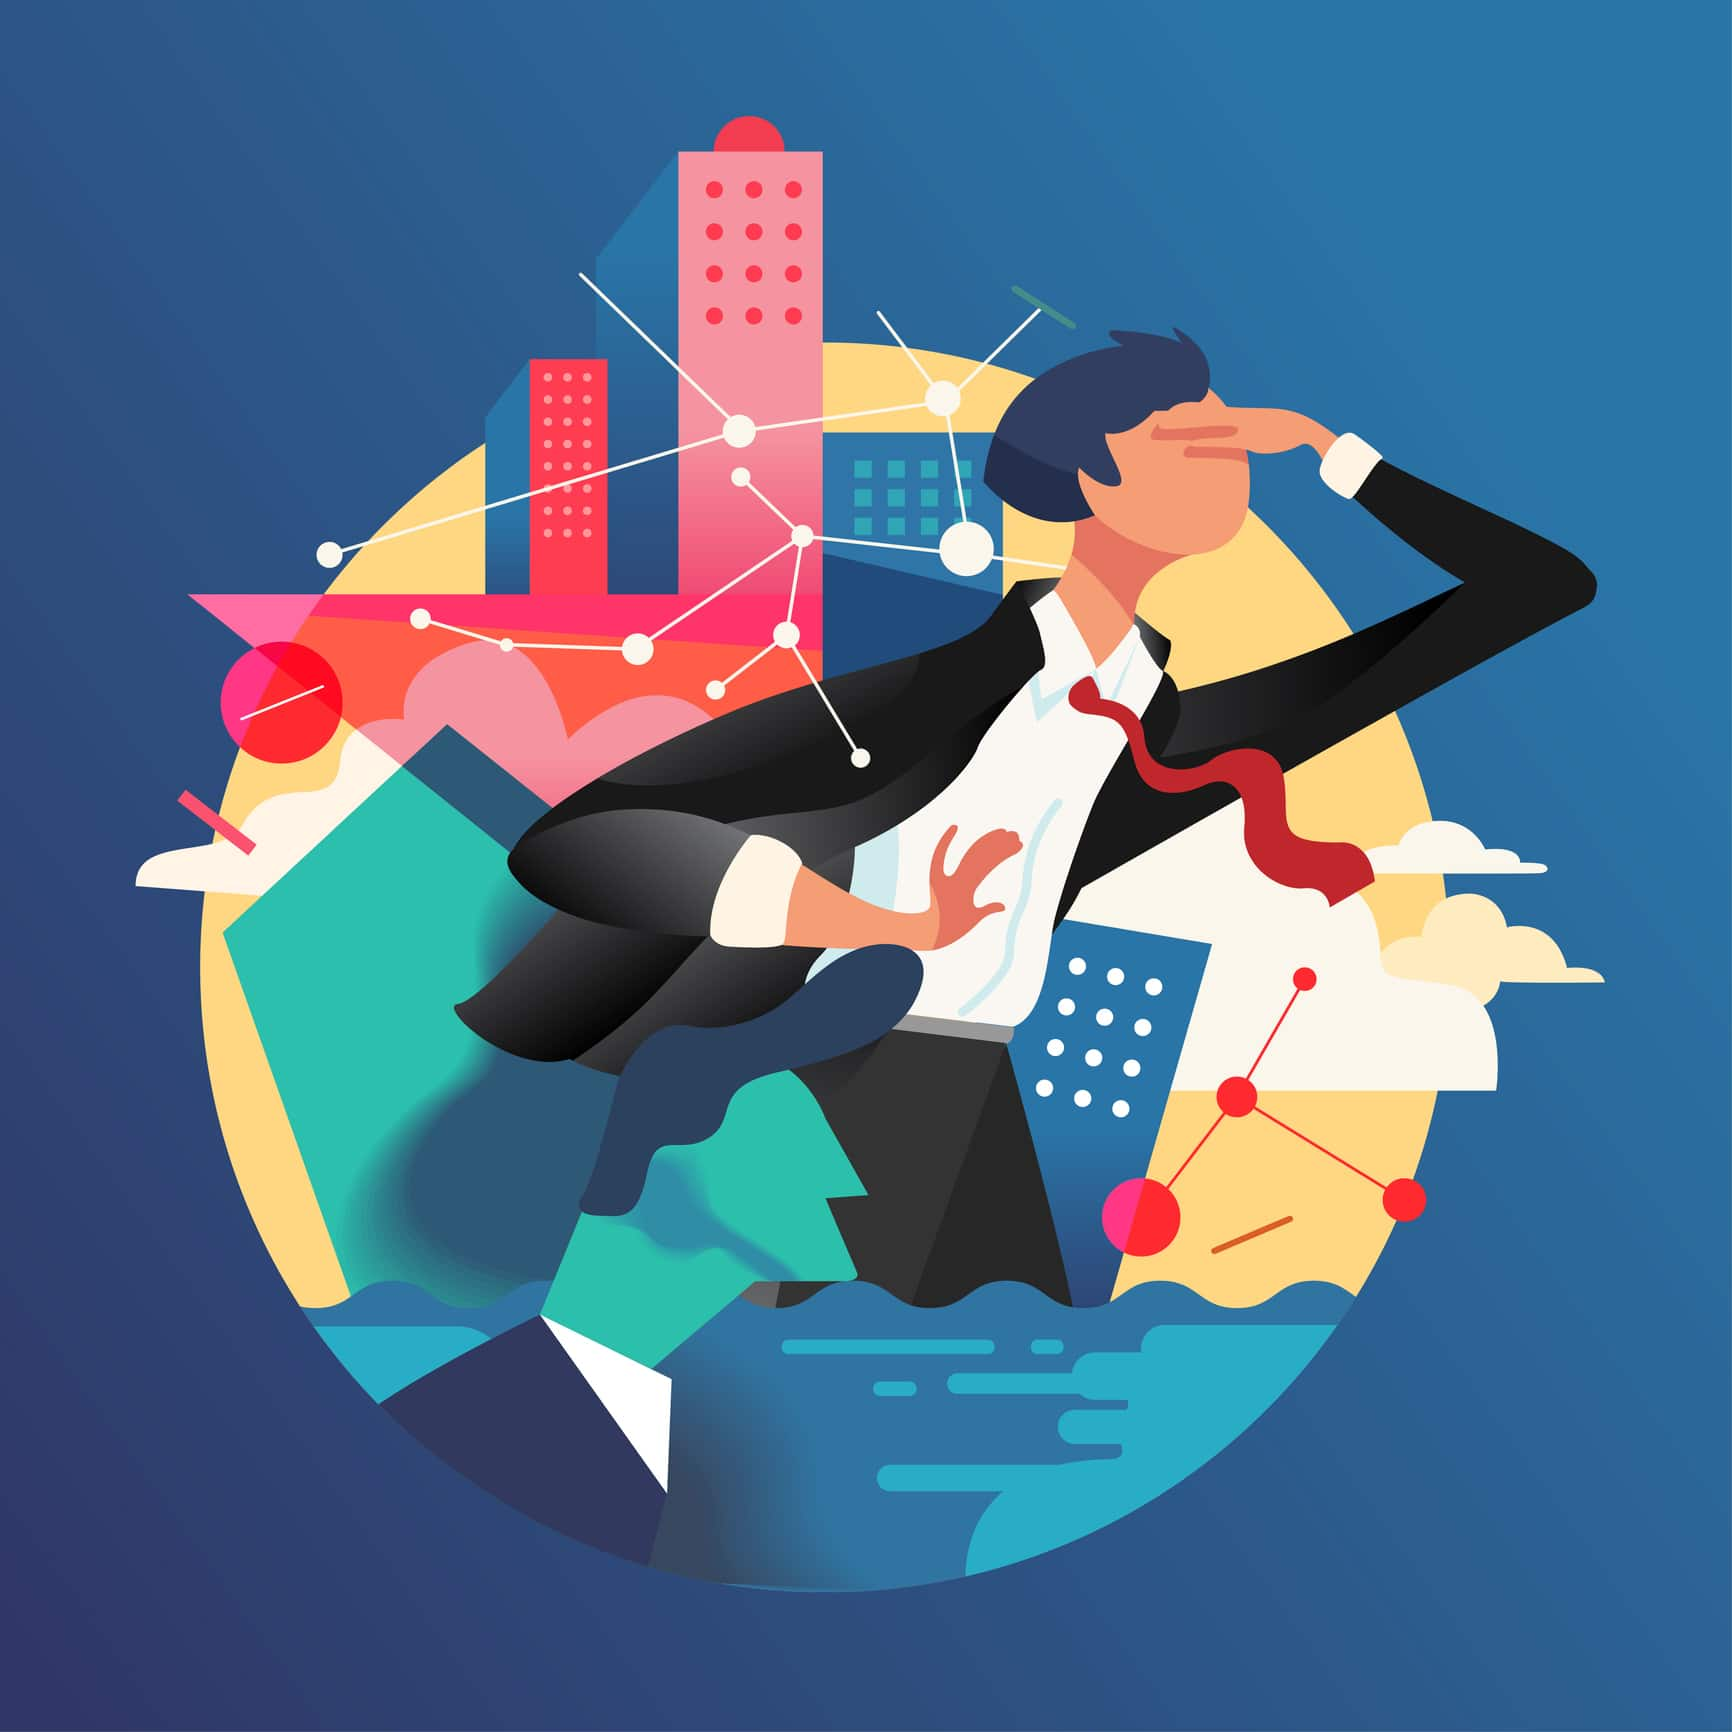 2D Flat Graphic Design. Businessman working in the city with technology and Network connectivity. Vector Illustration.